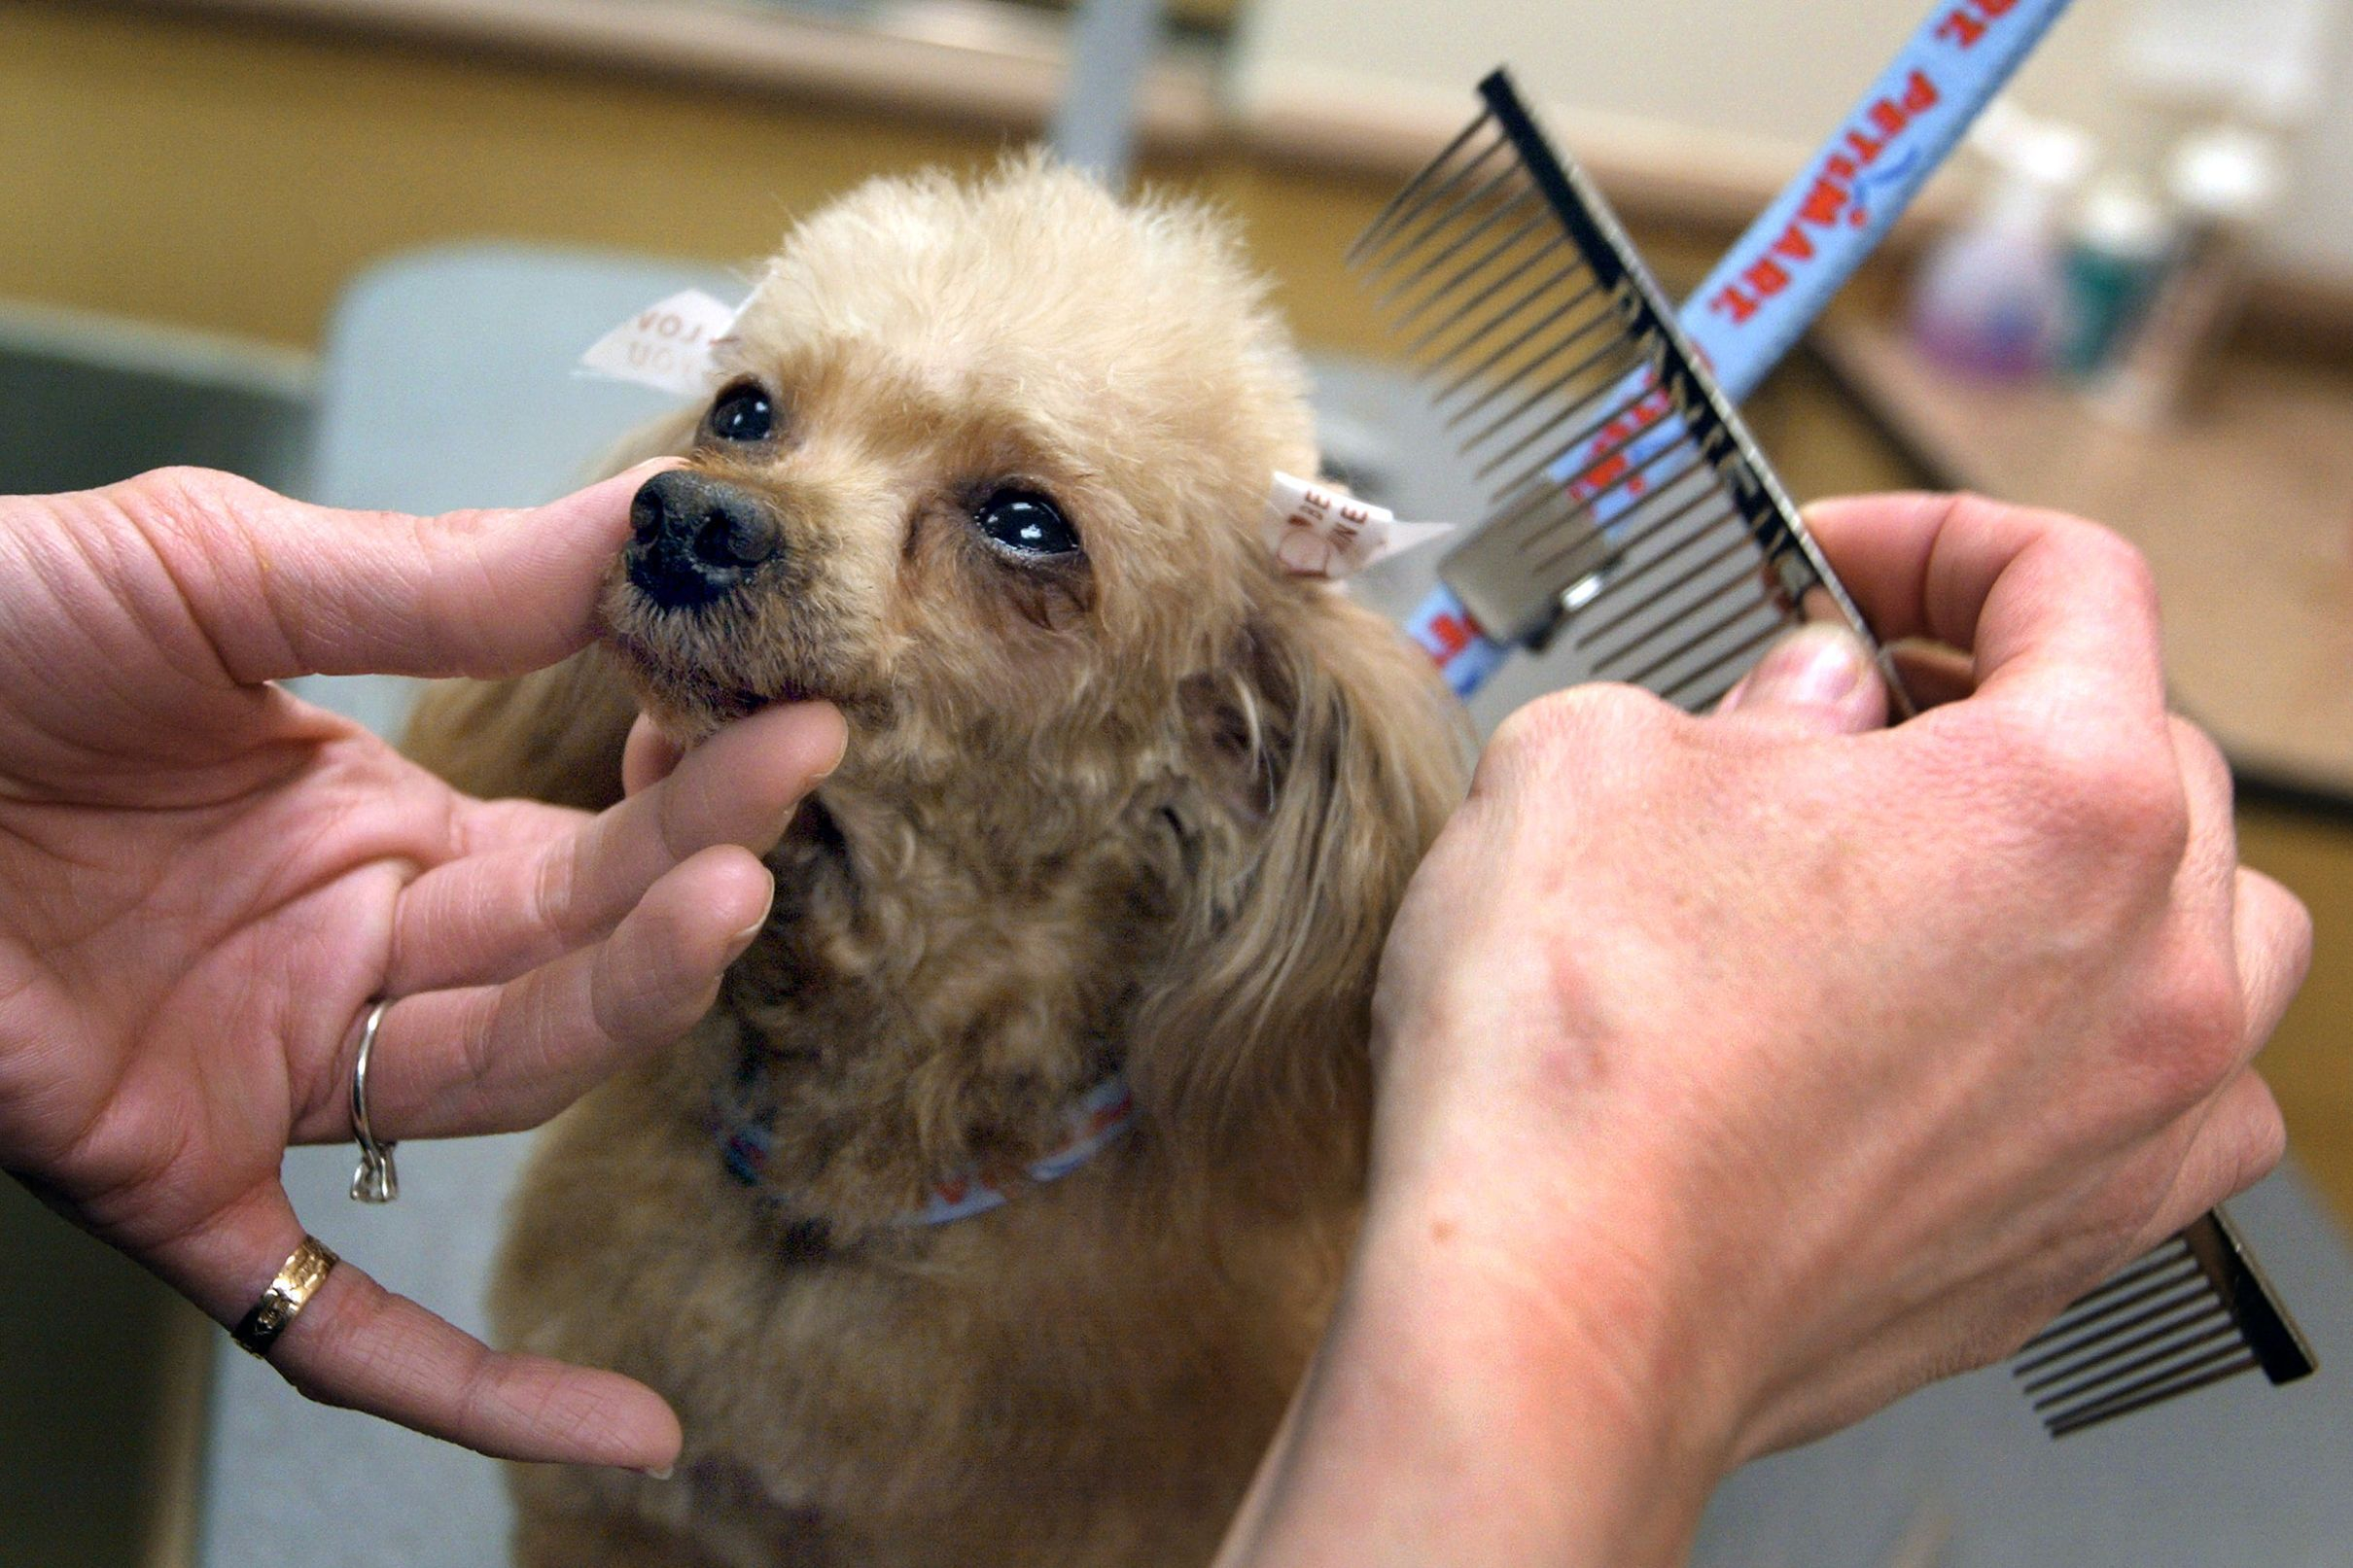 Petsmart Is Acquiring Chewy Com For 3 35 Billion In The Largest E Commerce Acquisition Ever With Images Dog Died Petsmart Grooming Dog Care